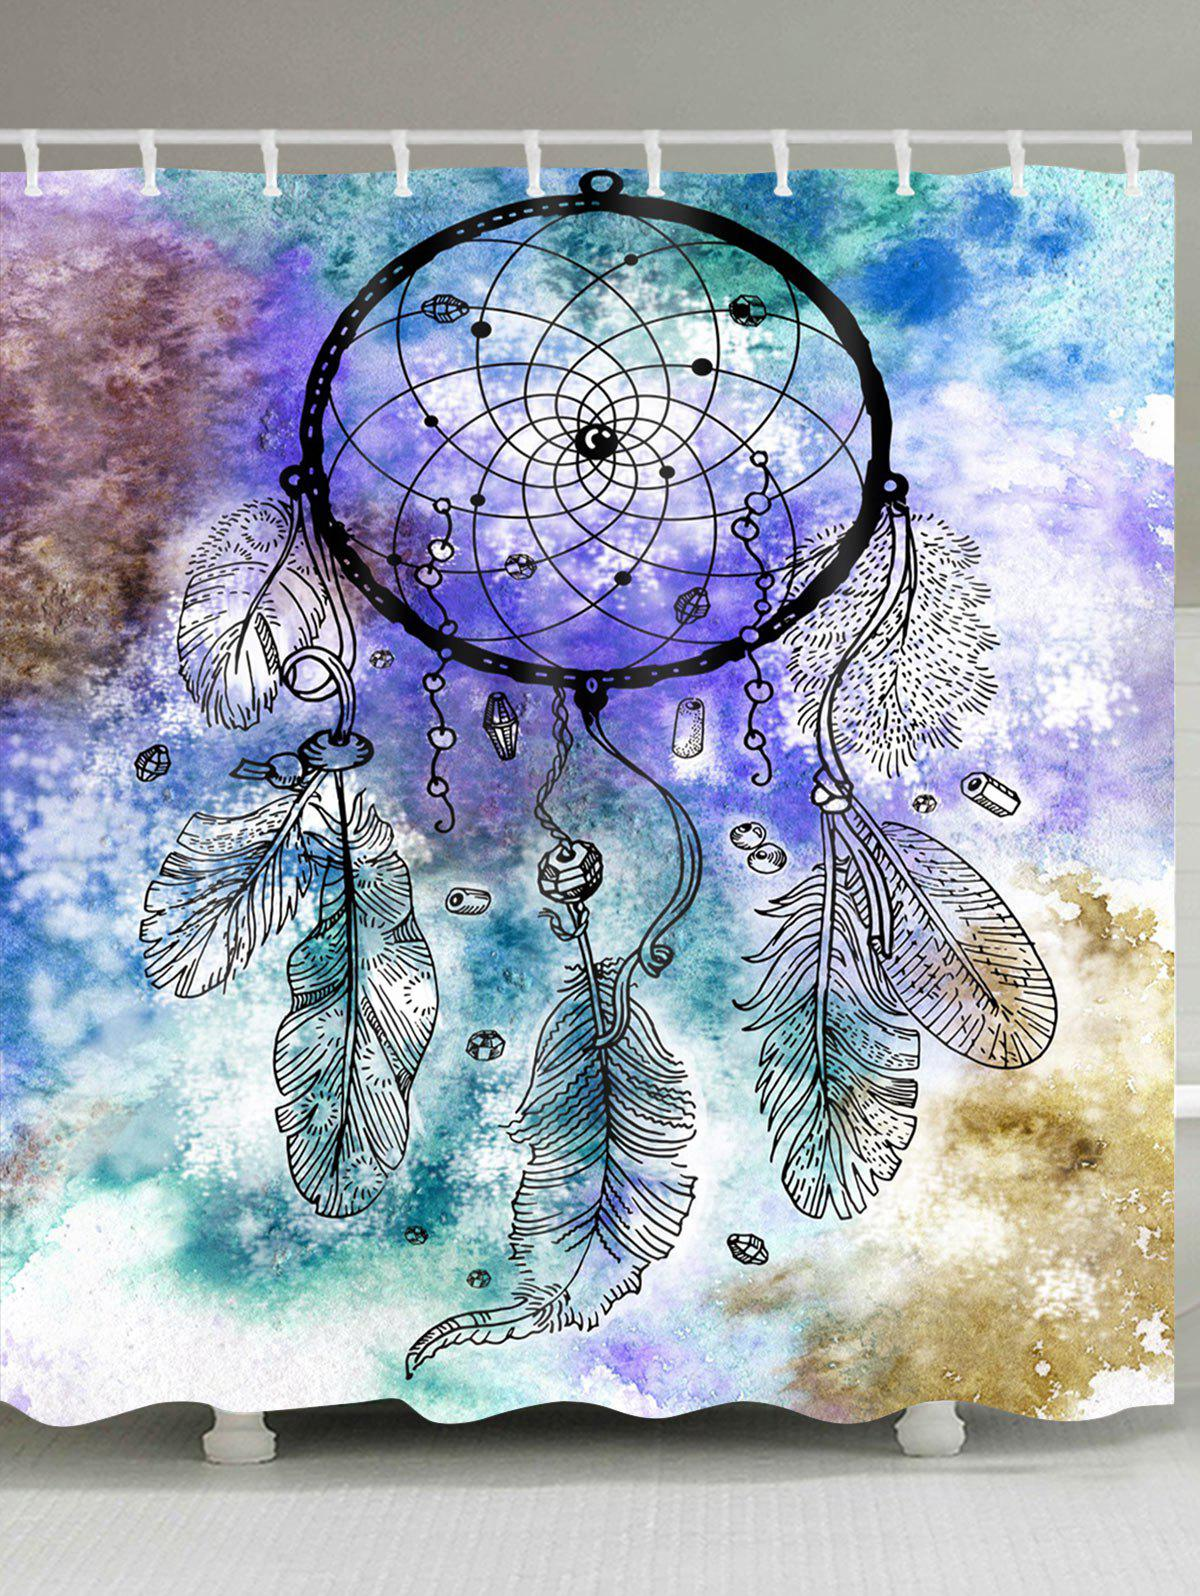 Dreamcatcher Watercolor Painting Print Waterproof Shower Curtain - COLORMIX W59 INCH * L71 INCH